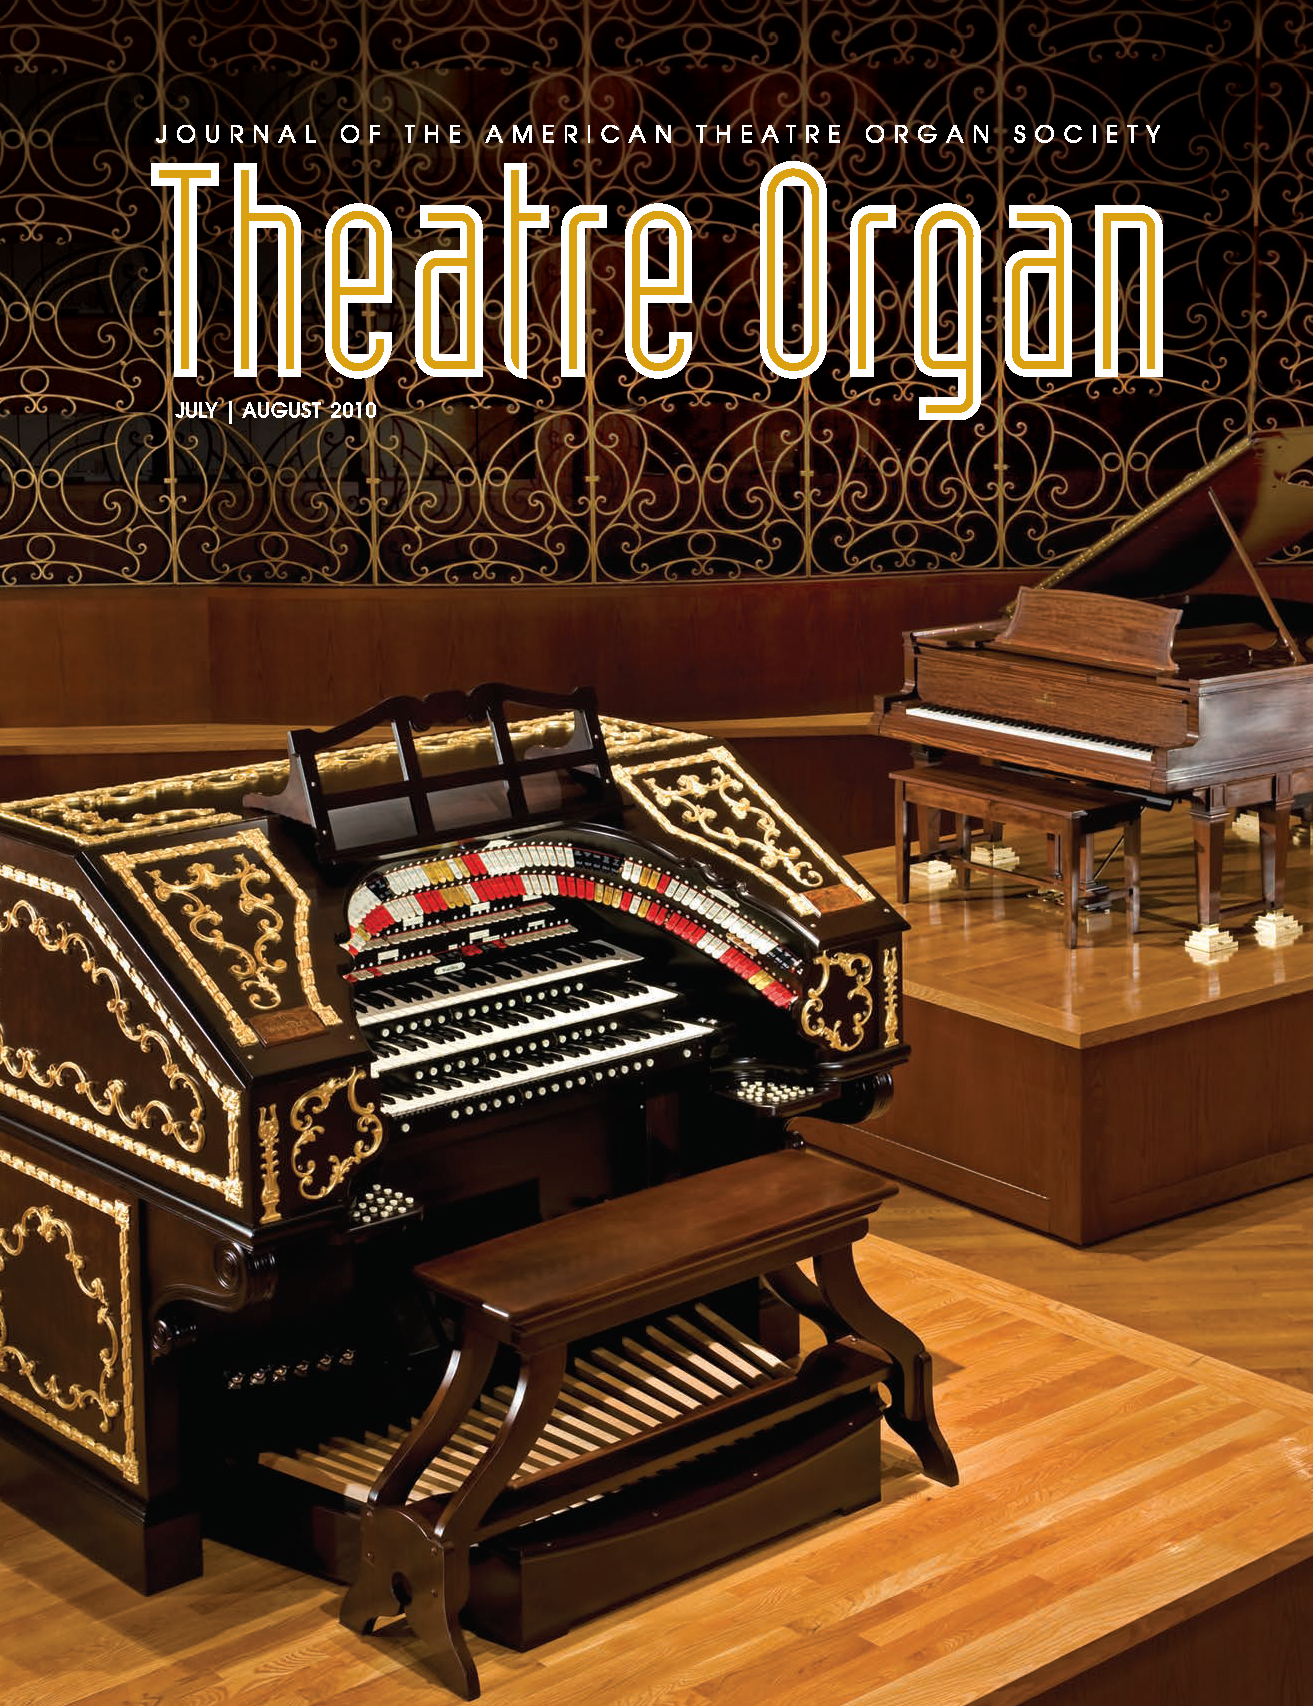 Theatre Organ, July - August 2010, Volume 52, Number 4